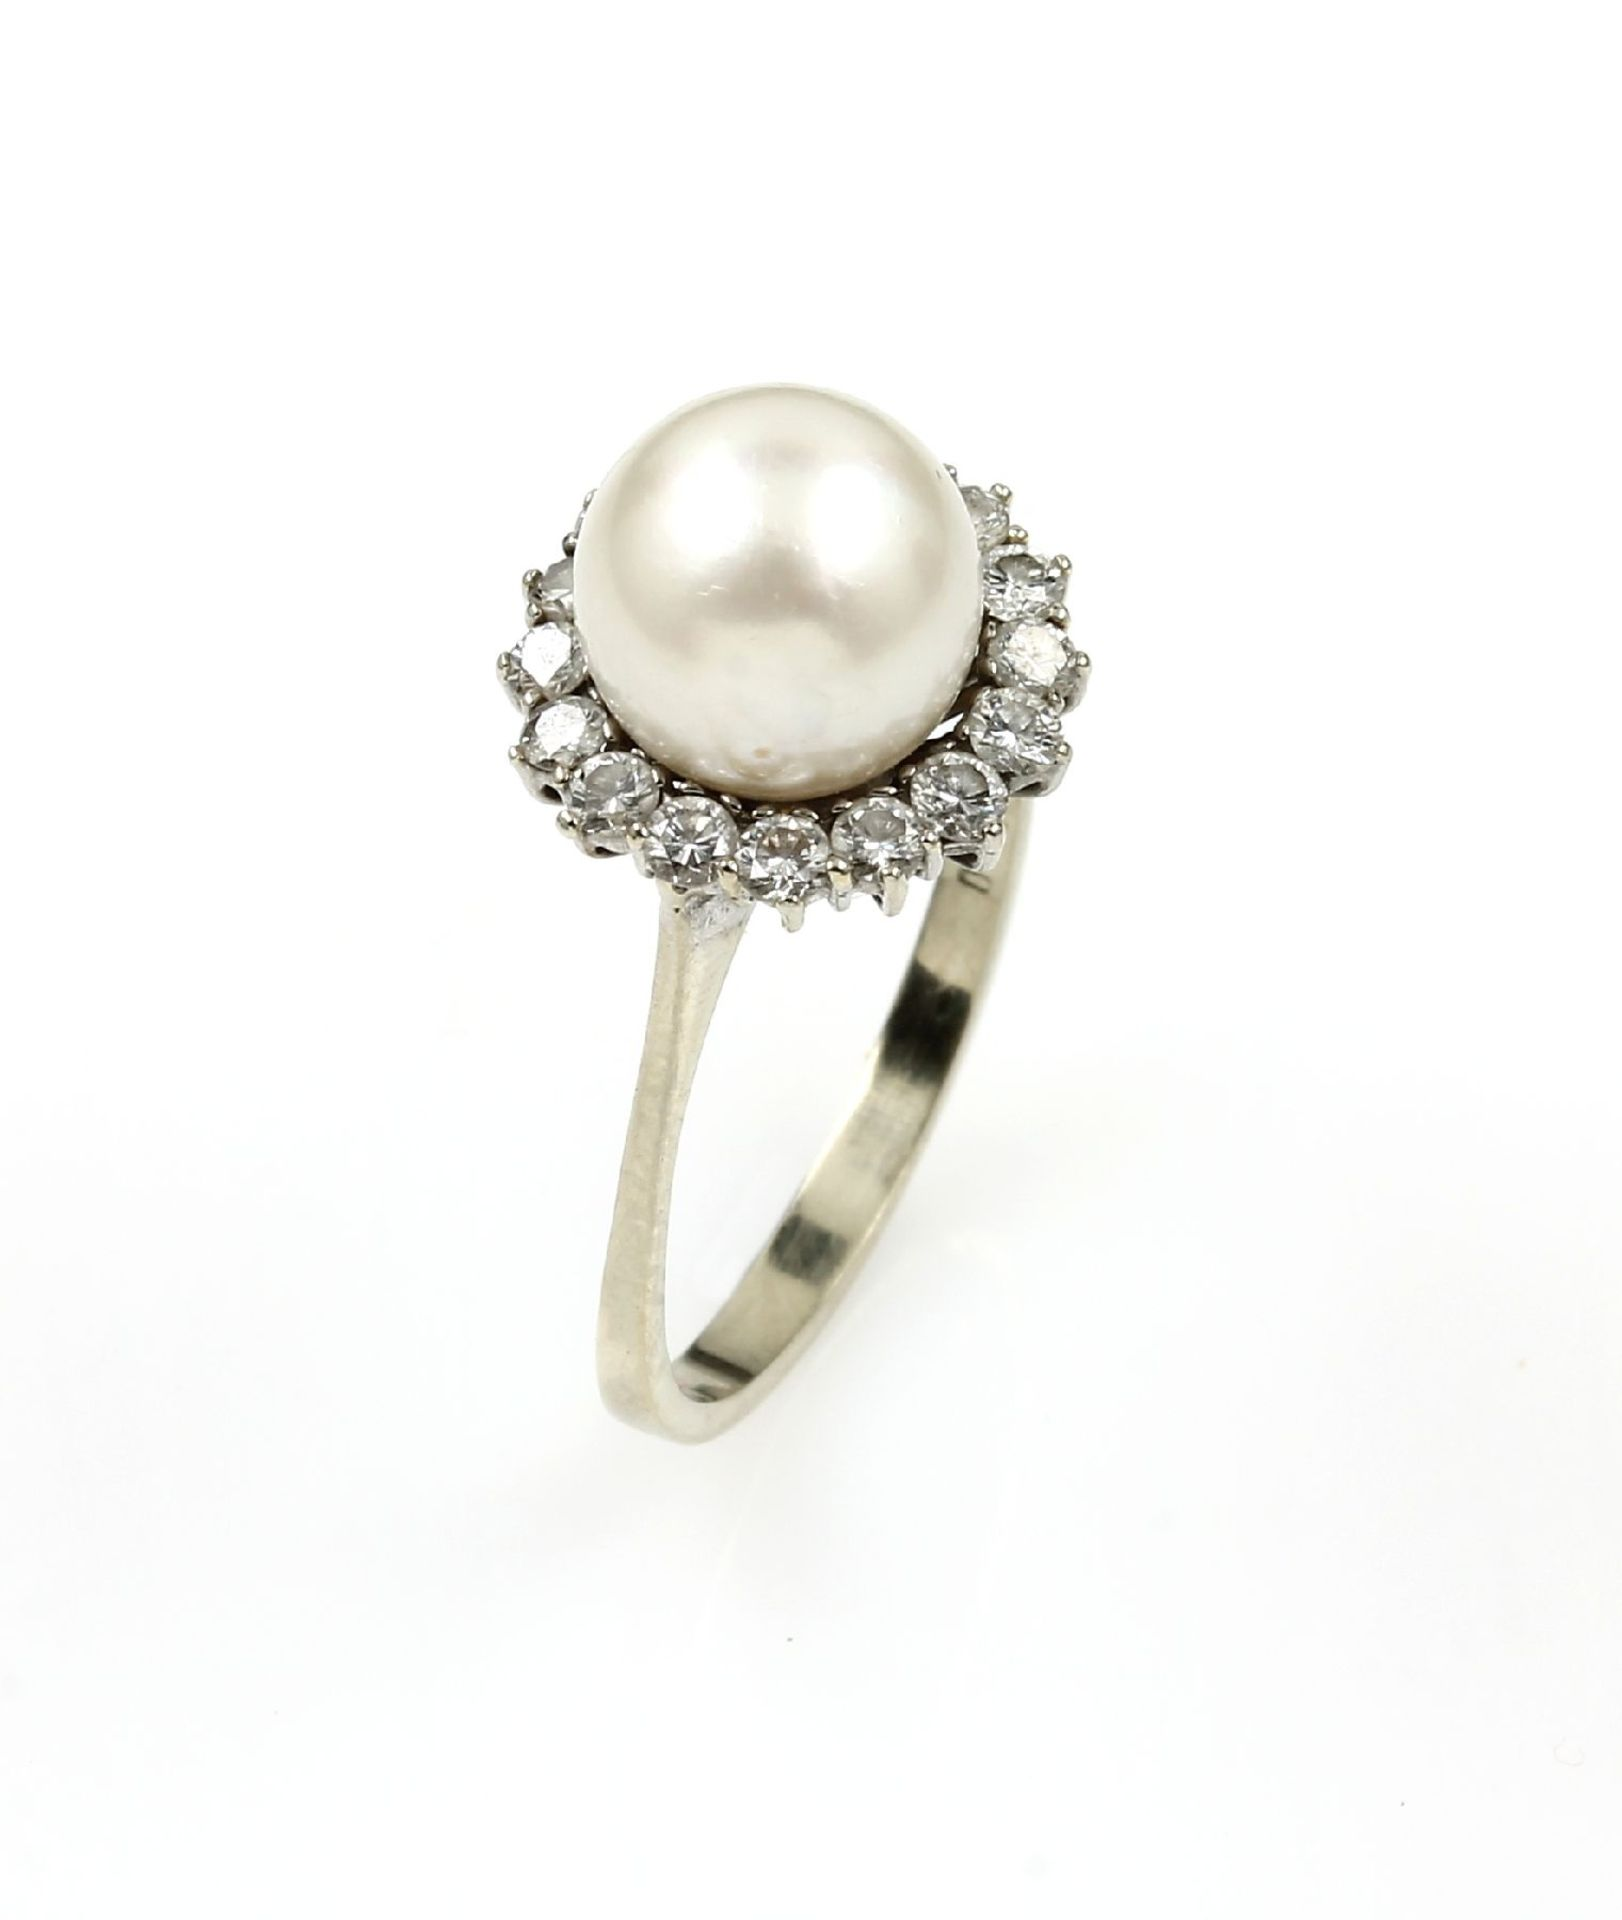 Los 61539 - 18 kt gold ring with cultured pearl and brilliants , WG 750/000, 1 cultured pearl diam. approx. 9.